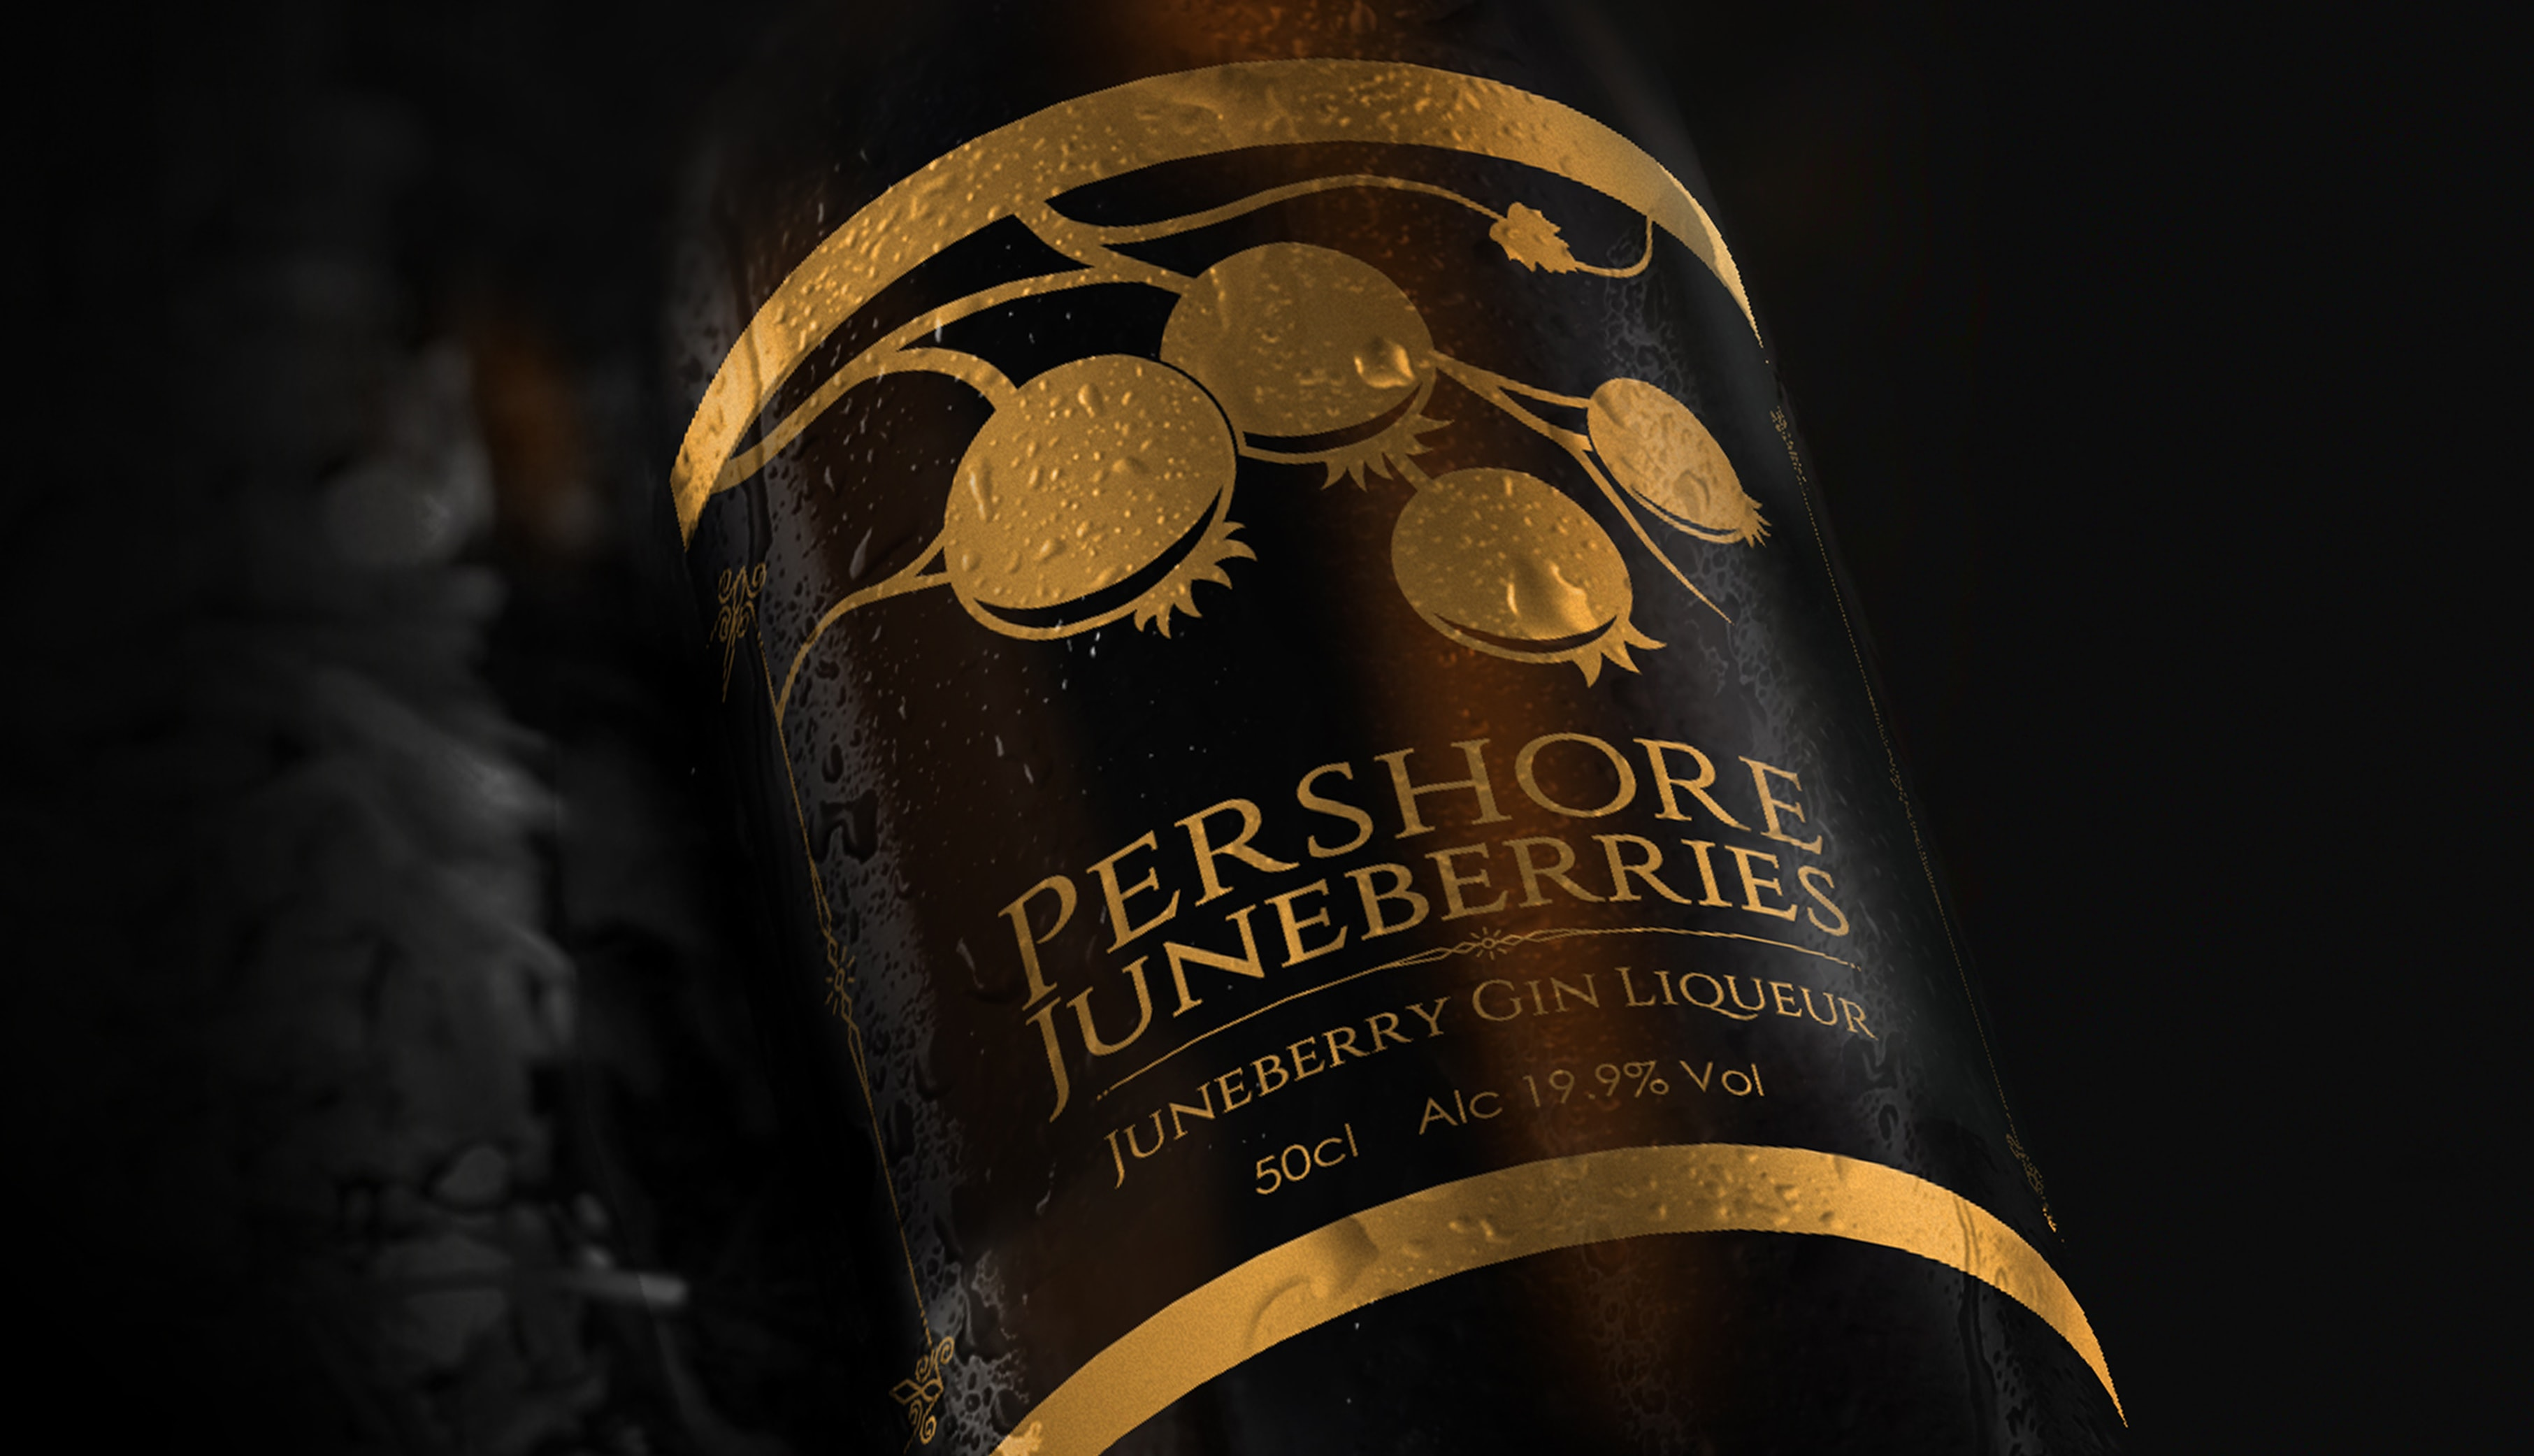 Pershore Juneberries - Gin Packaging